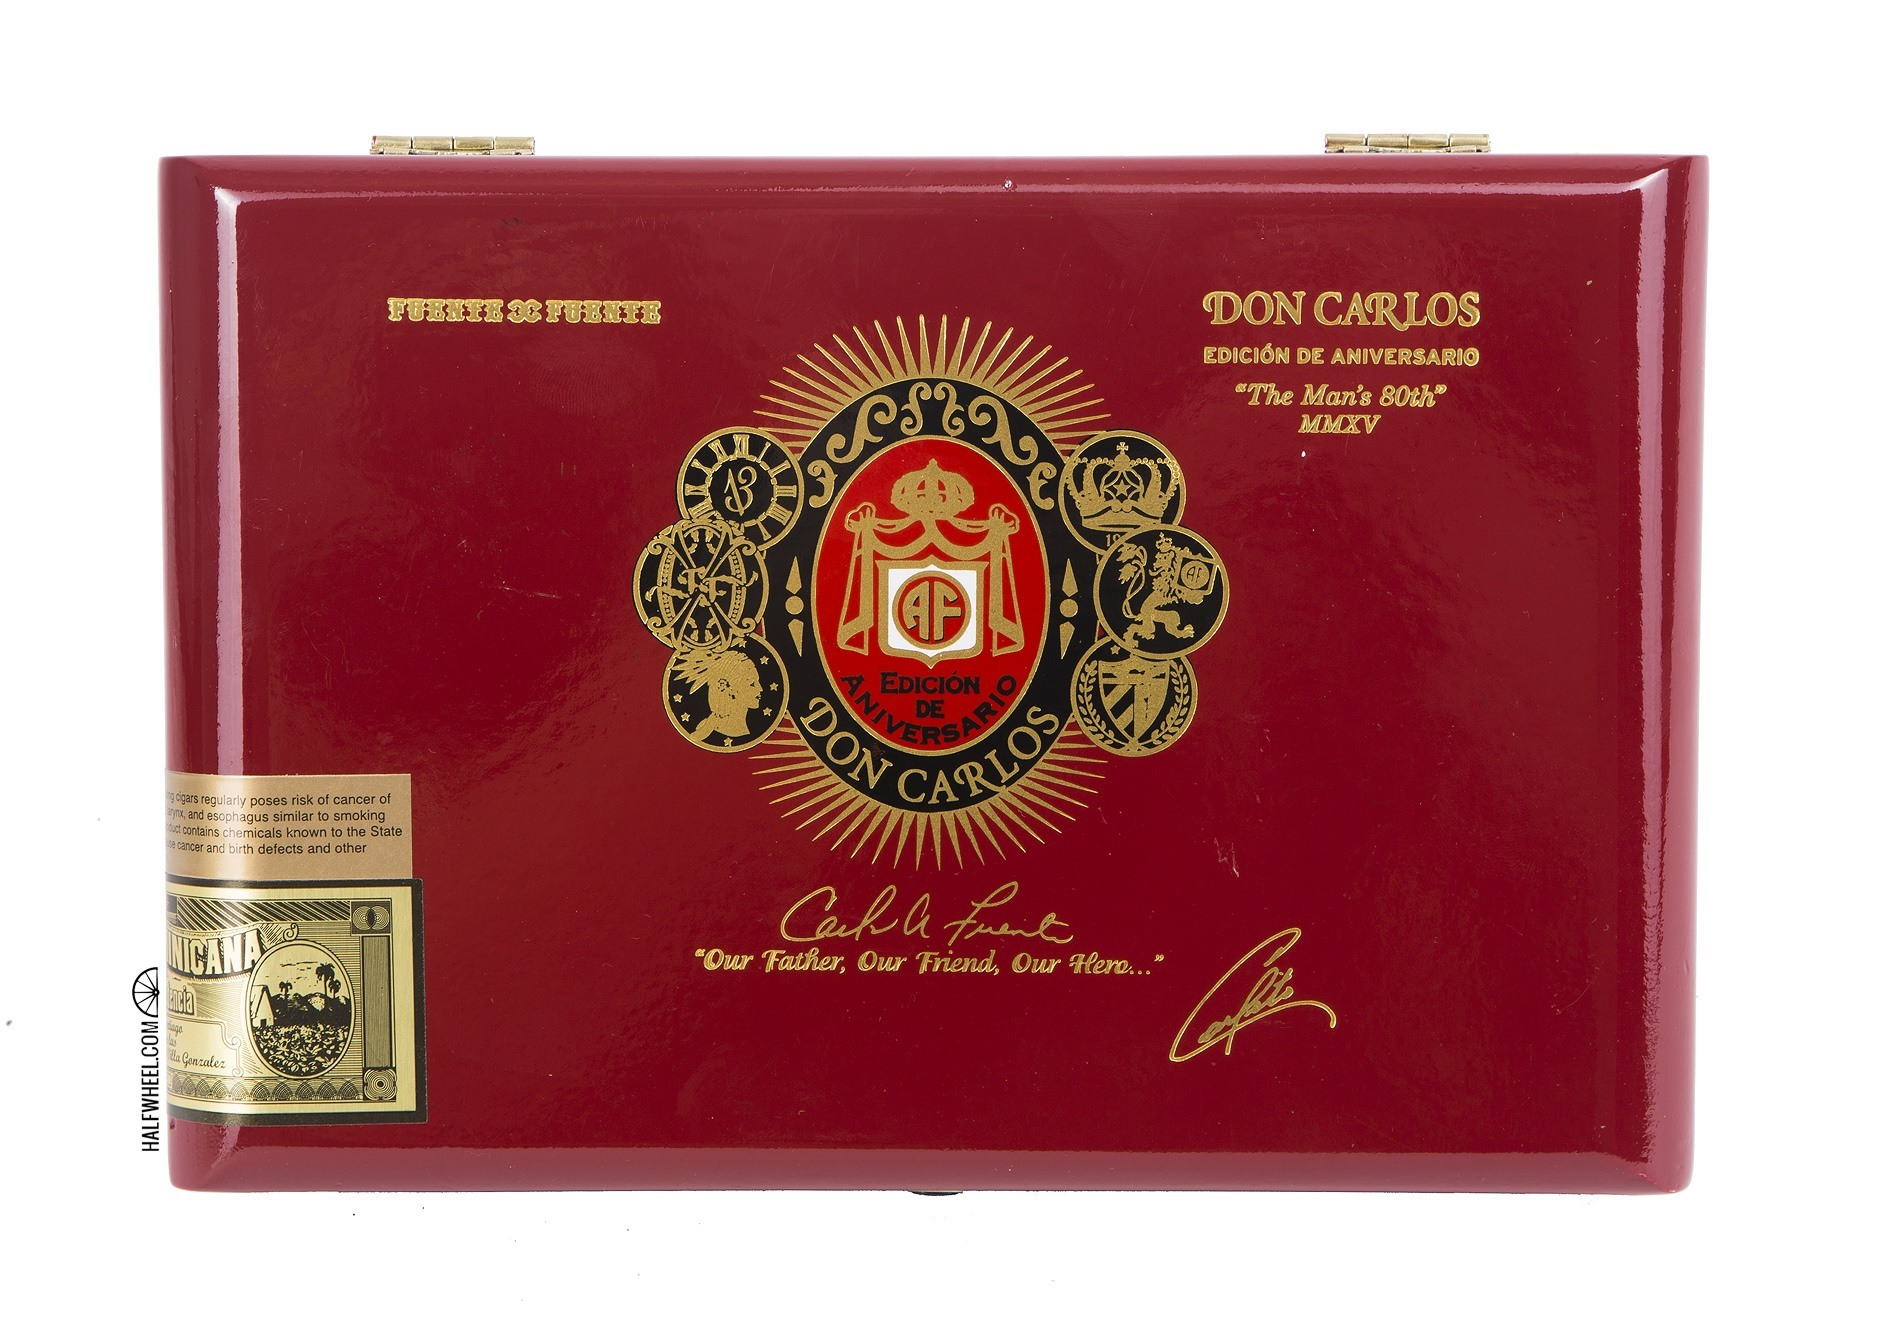 Arturo Fuente Don Carlos Eye of the Shark Box 1